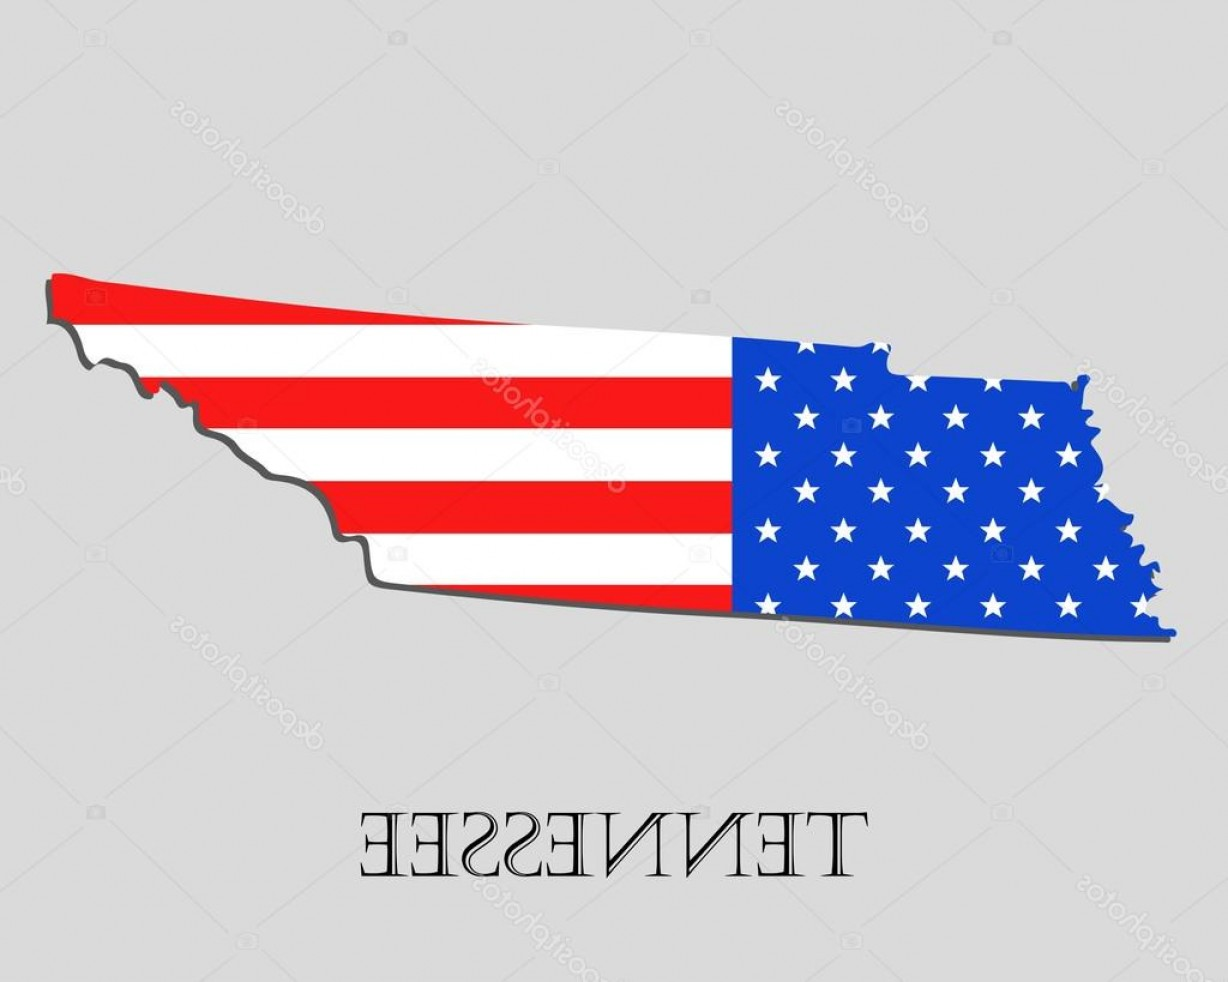 Tennessee Flag Vector: Stock Illustration Map State Of Tennessee In